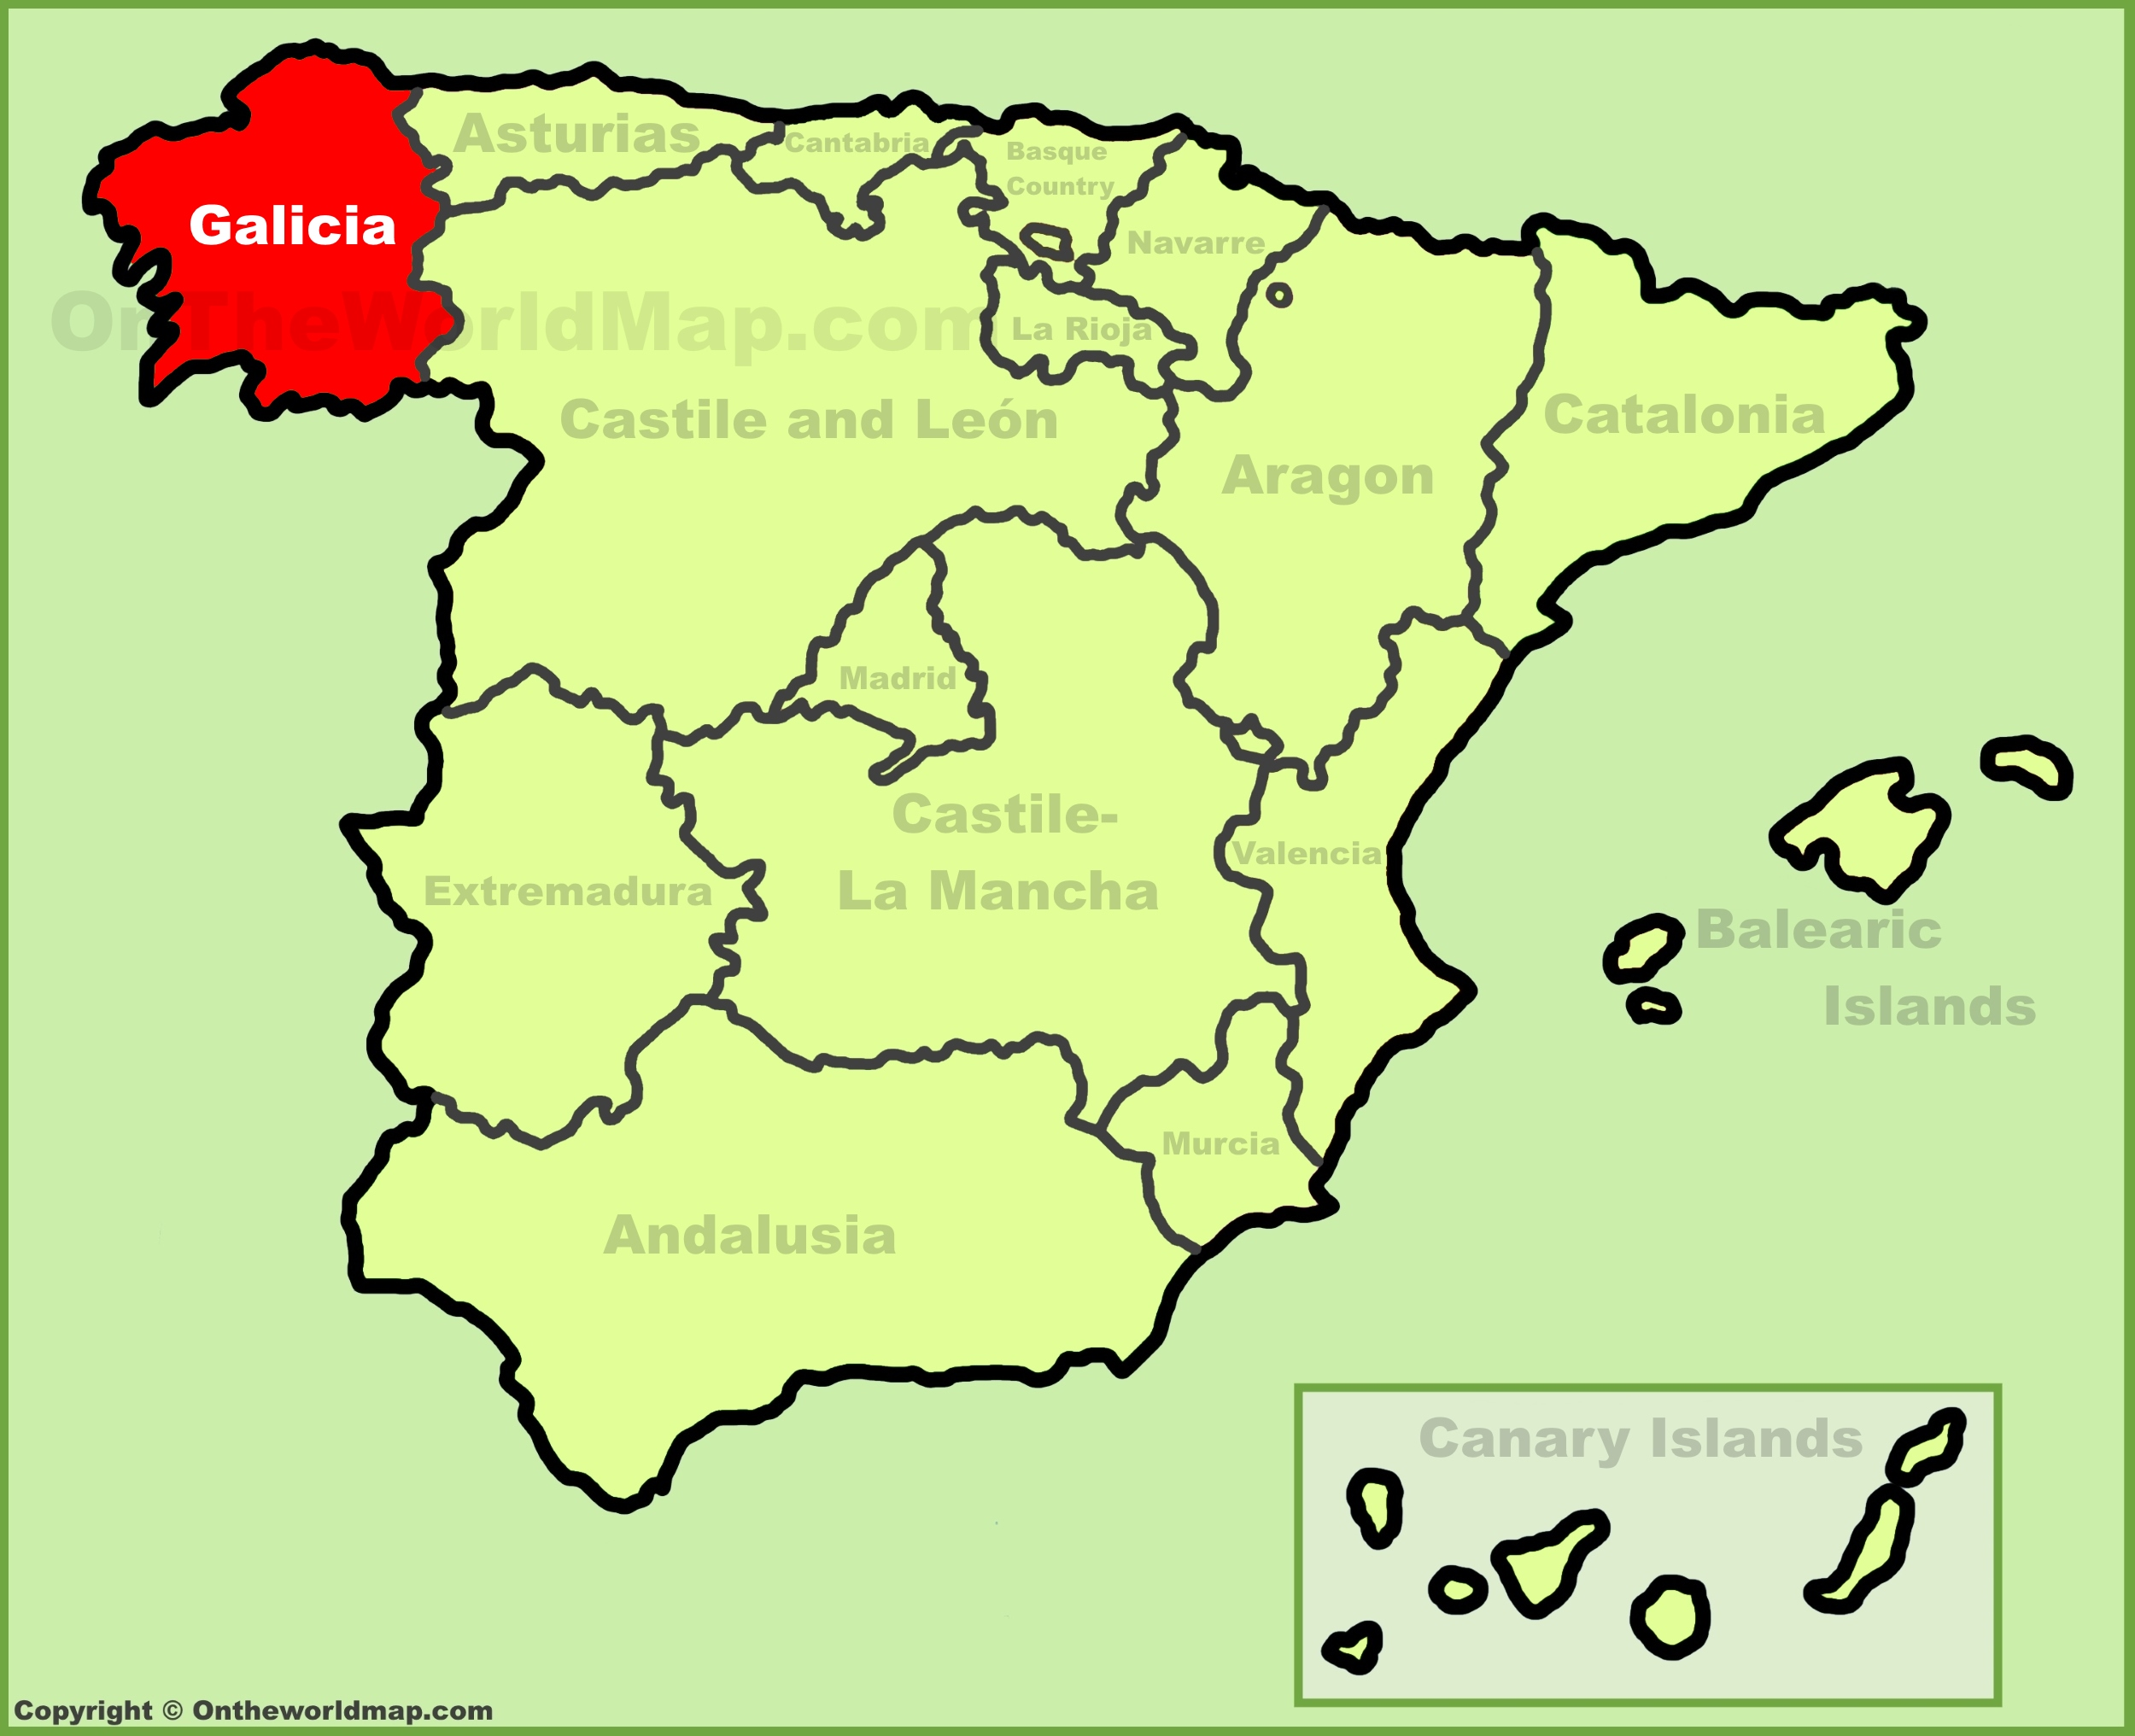 Galicia location on the Spain map